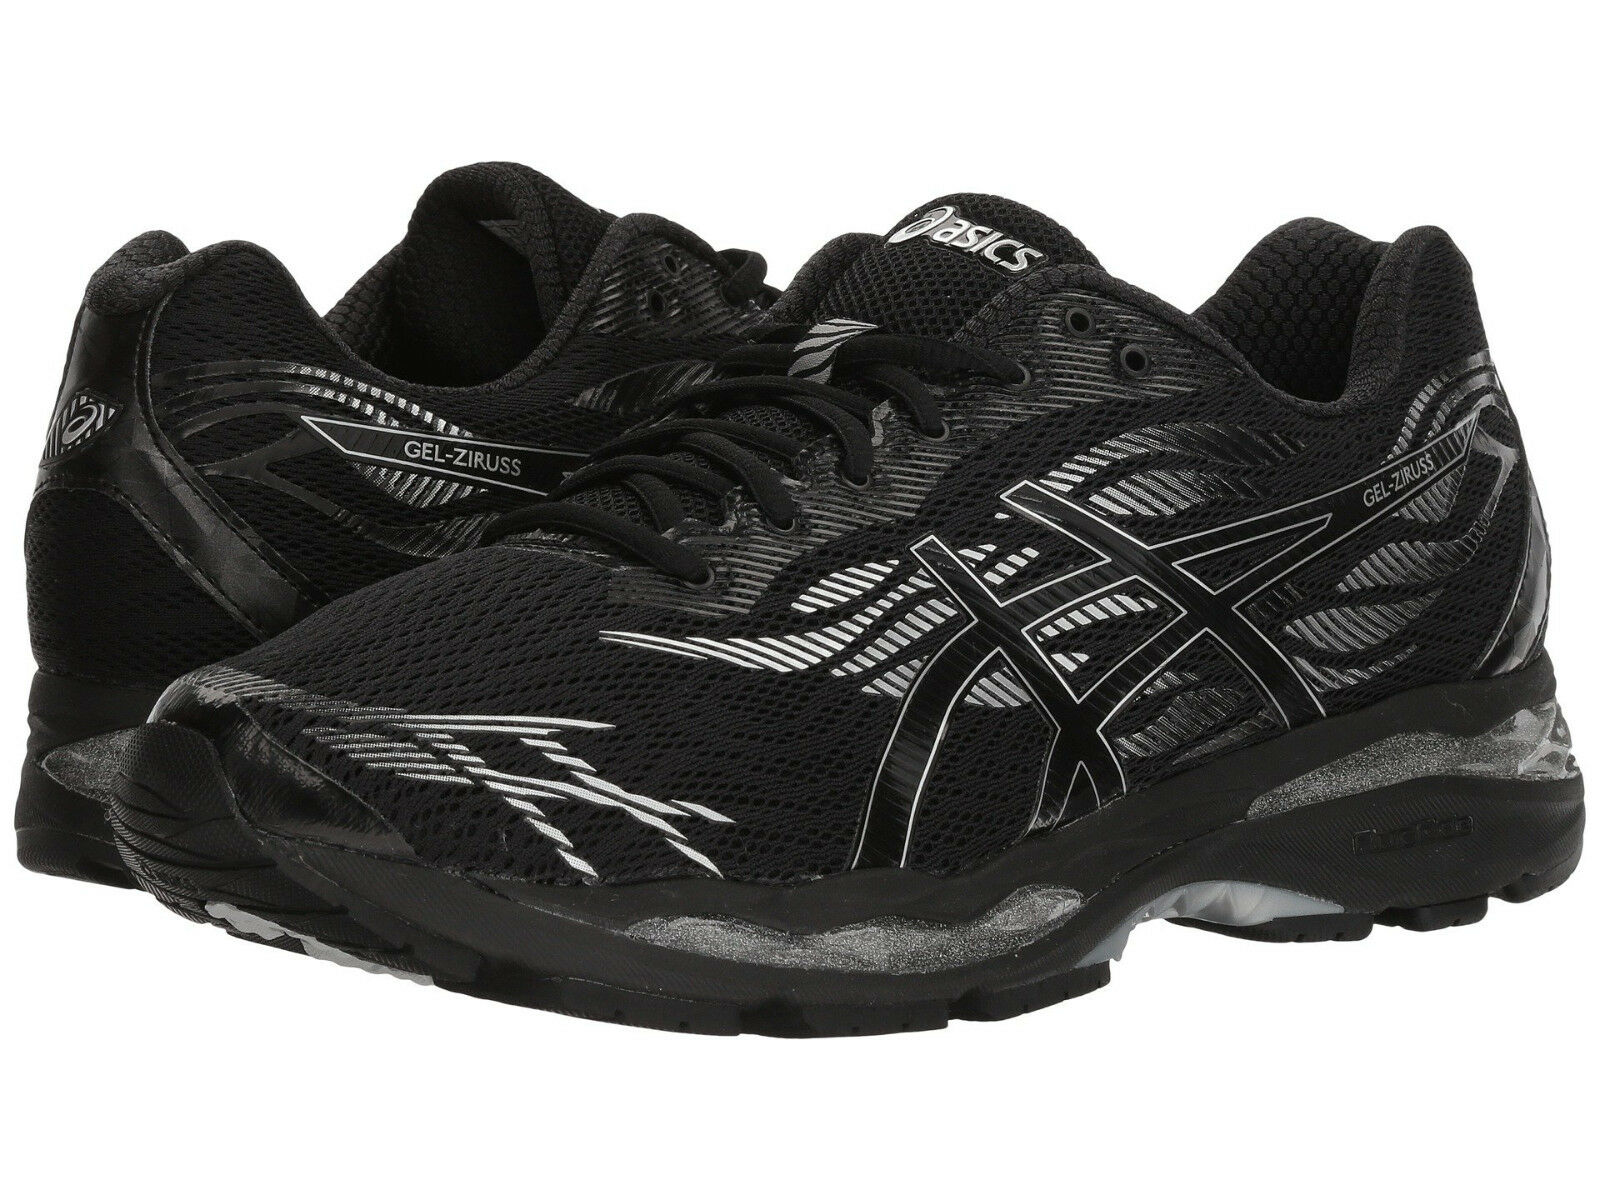 ASICS GEL-ZIRUSS, Men's Sizes 12.5-13 D, Black Black Silver, NEW